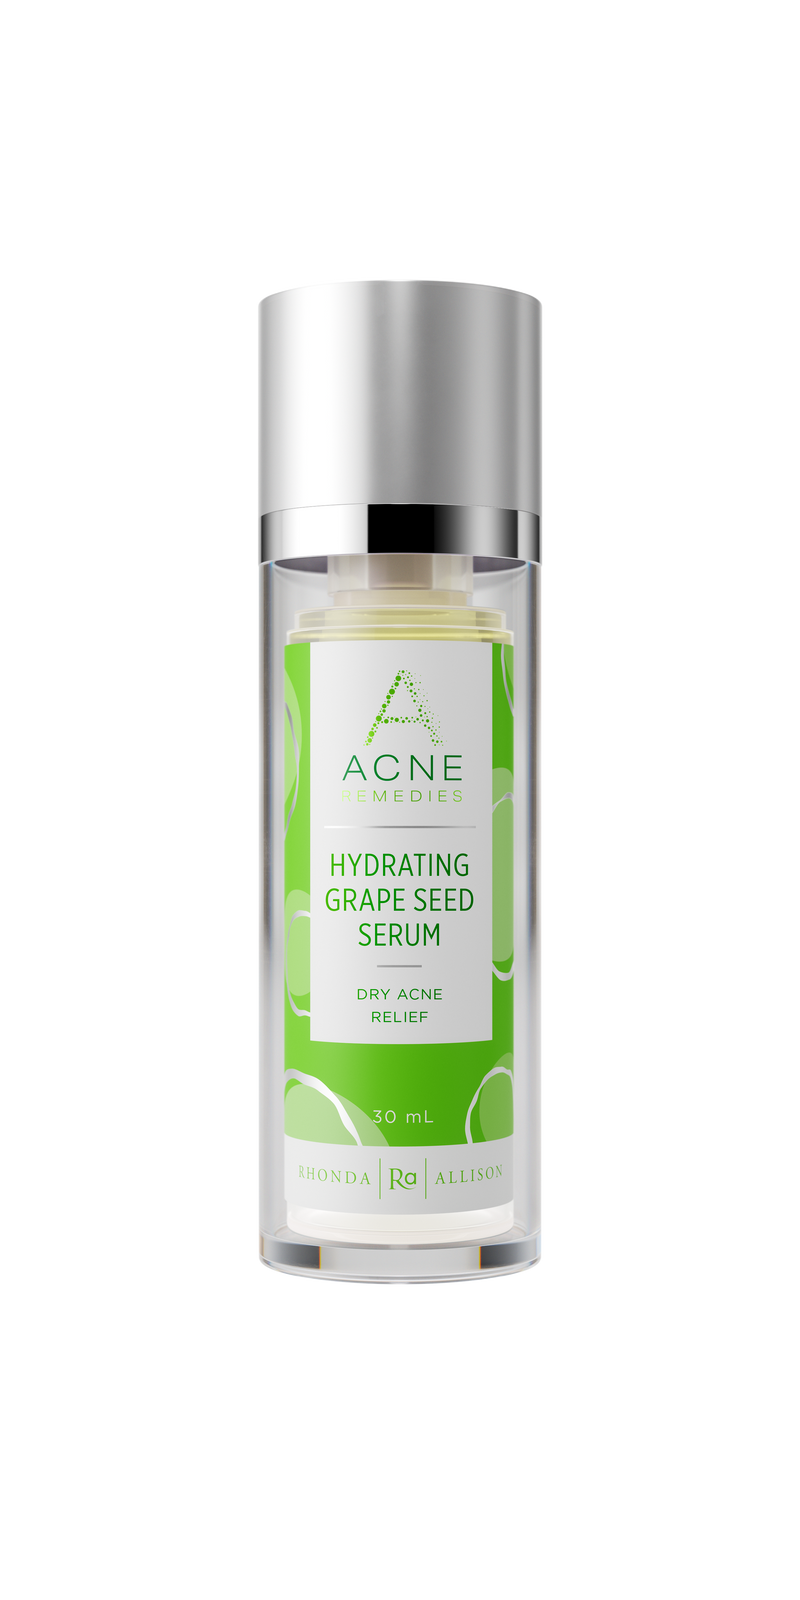 RHONDA ALLISON HYDRATING GRAPE SEED SERUM